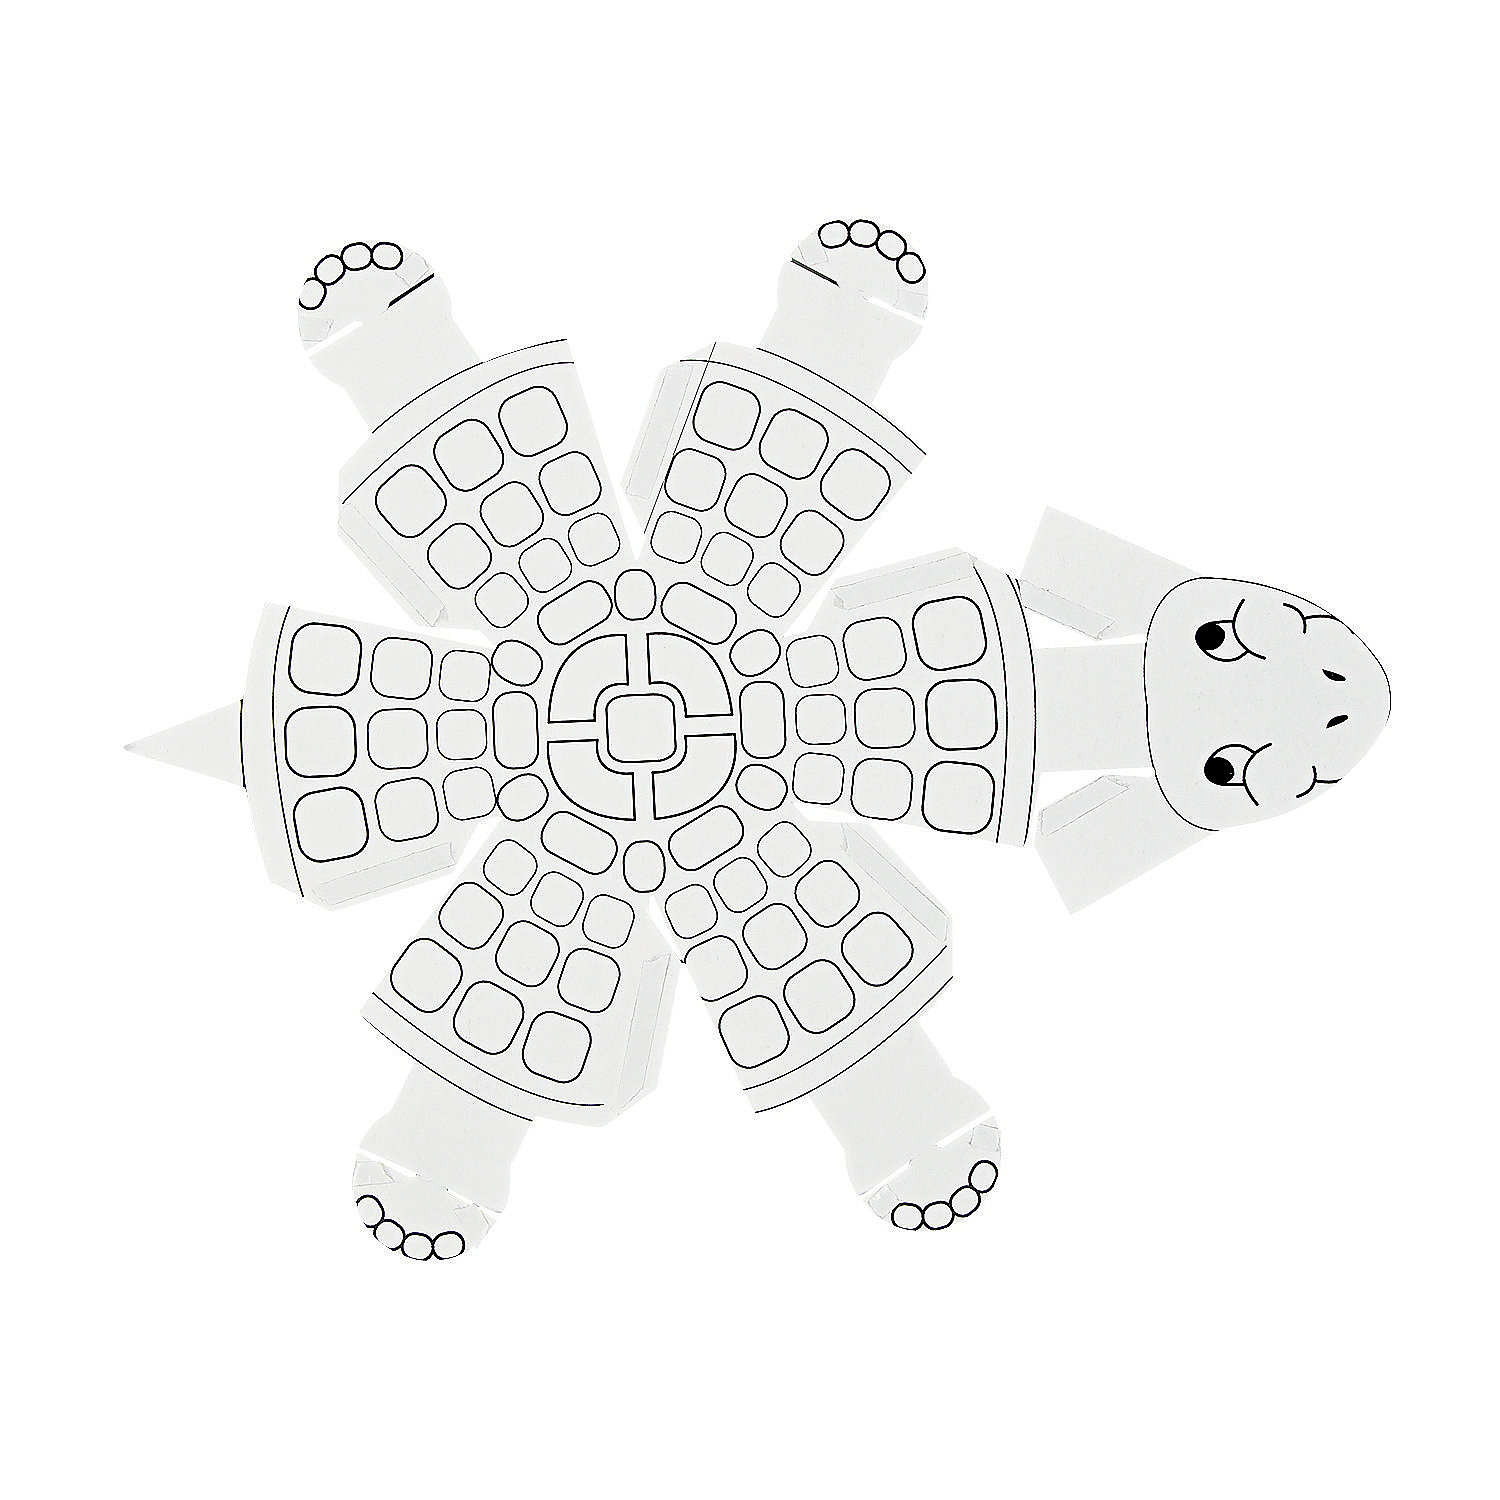 Color Your Own 3D Turtles, Coloring Crafts, Crafts for ... - photo#21